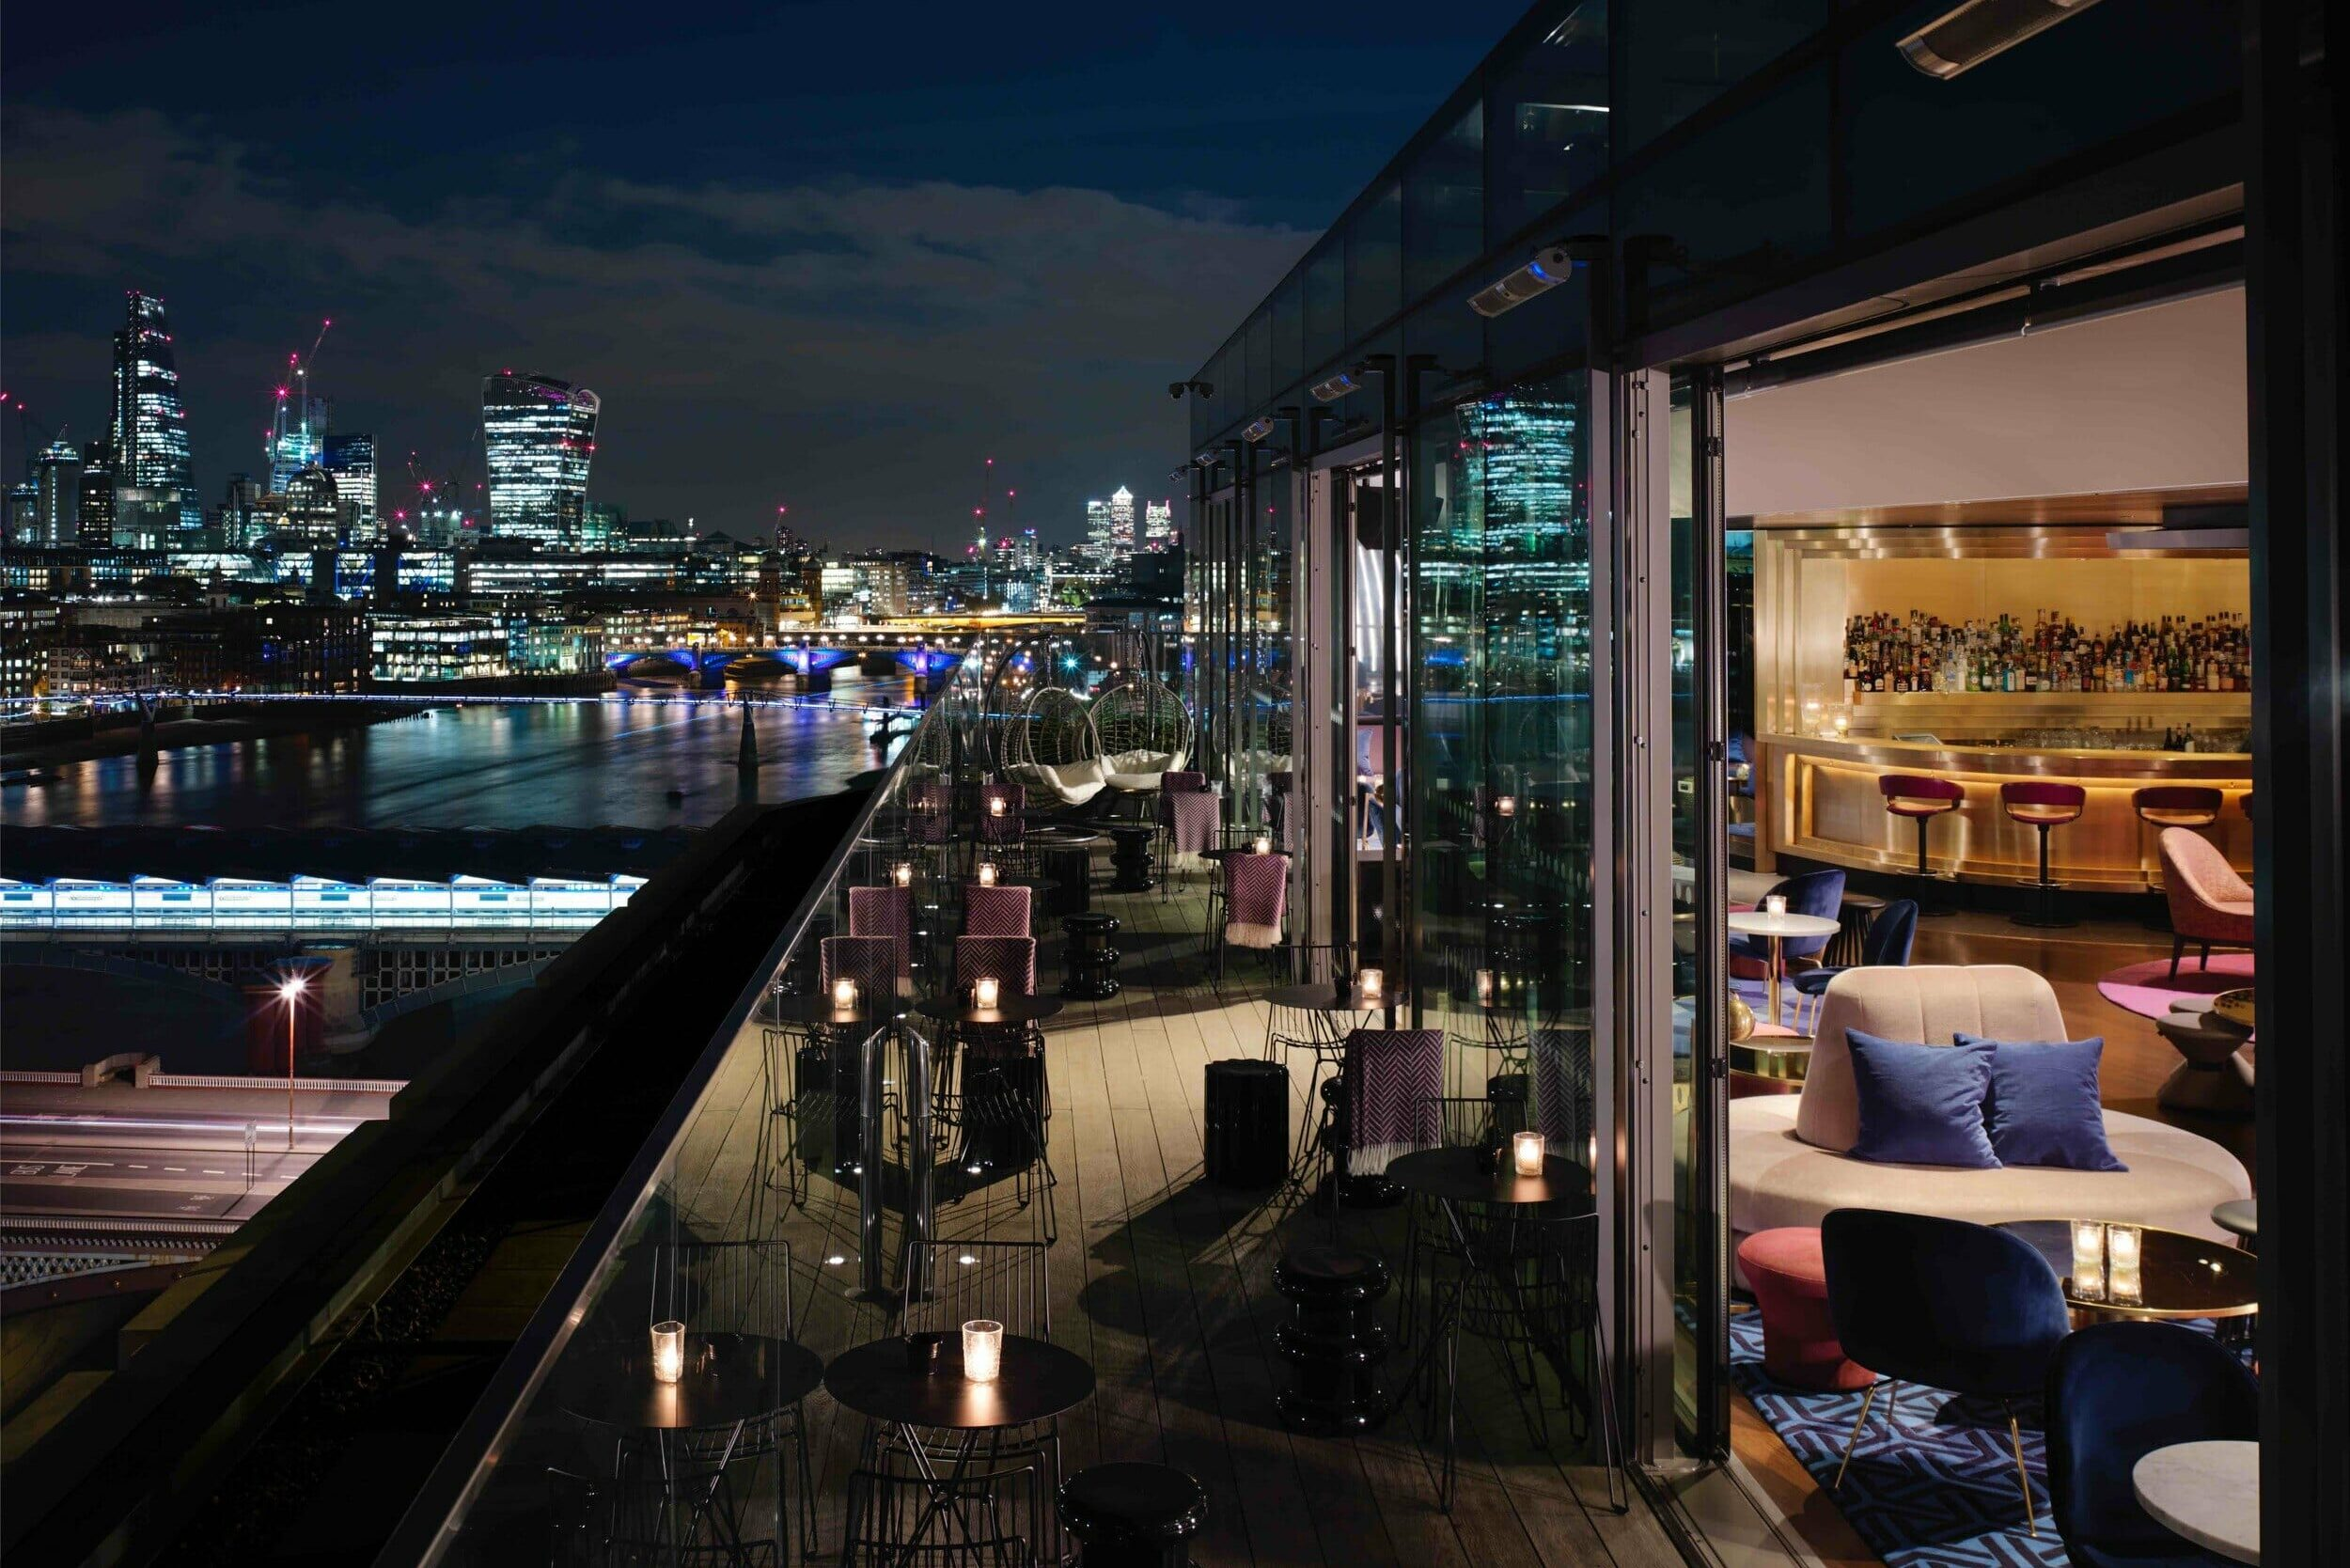 12th knot rooftop bar